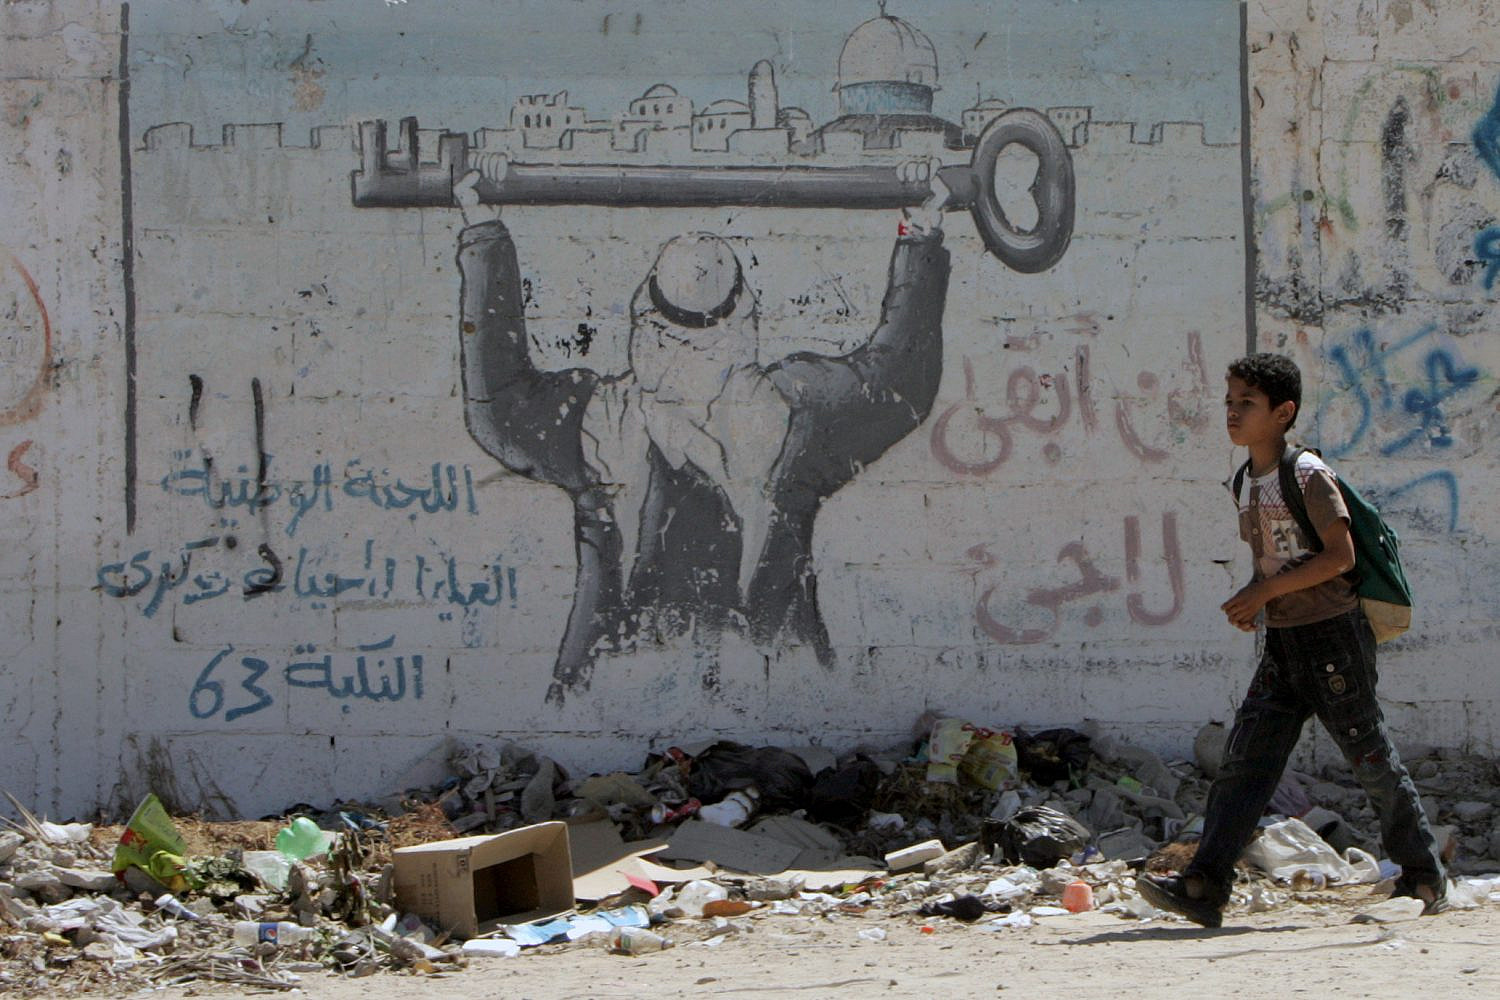 "Palestinian boy walks front of graffiti that reads 'Returning' as Palestinians attend ""Camp of Return"" to mark refugees' ties to their lost land, in Rafah, southern Gaza Strip, May 12, 2013. (Abed Rahim Khatib/Flash90)"